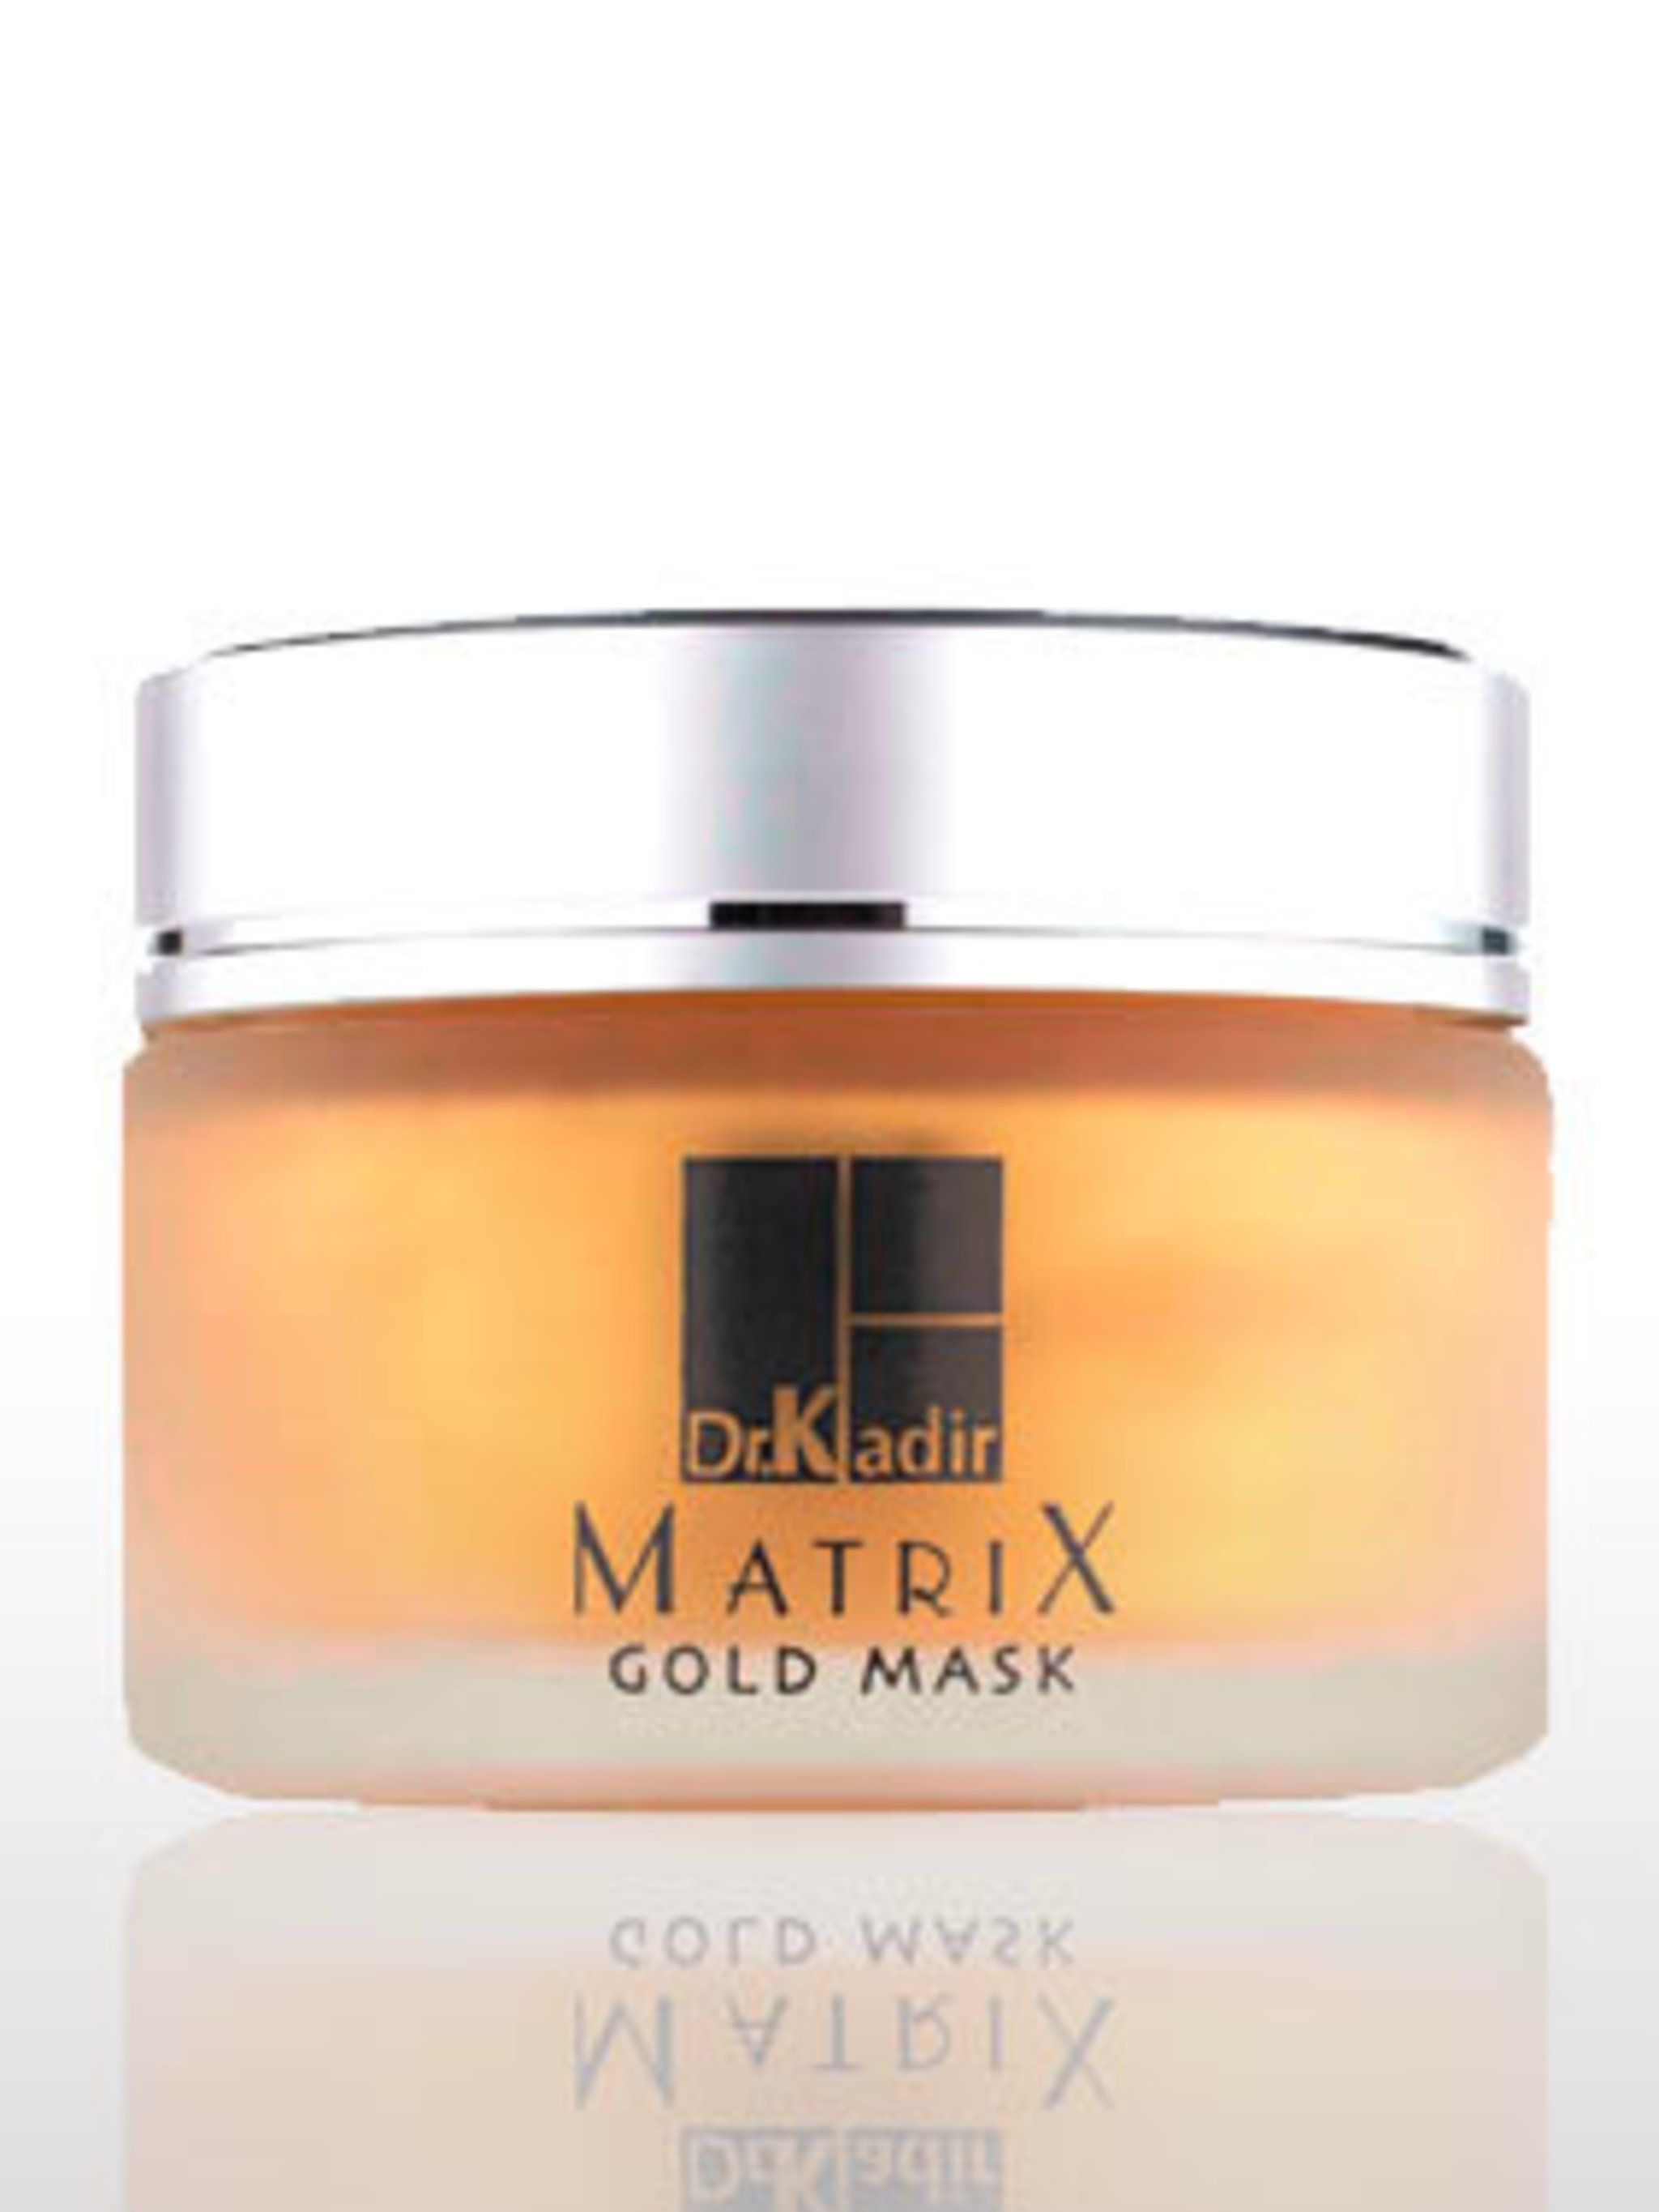 <p>Tel Aviv based dermatologist Dr Kadir is well known in the middle east, as well as having a cult following in New York (Jennifer Aniston and Madonna are fans). His Matrix Gold Mask, £110, brightens, lightens and hydrates skin in just 2-4 weeks thanks t